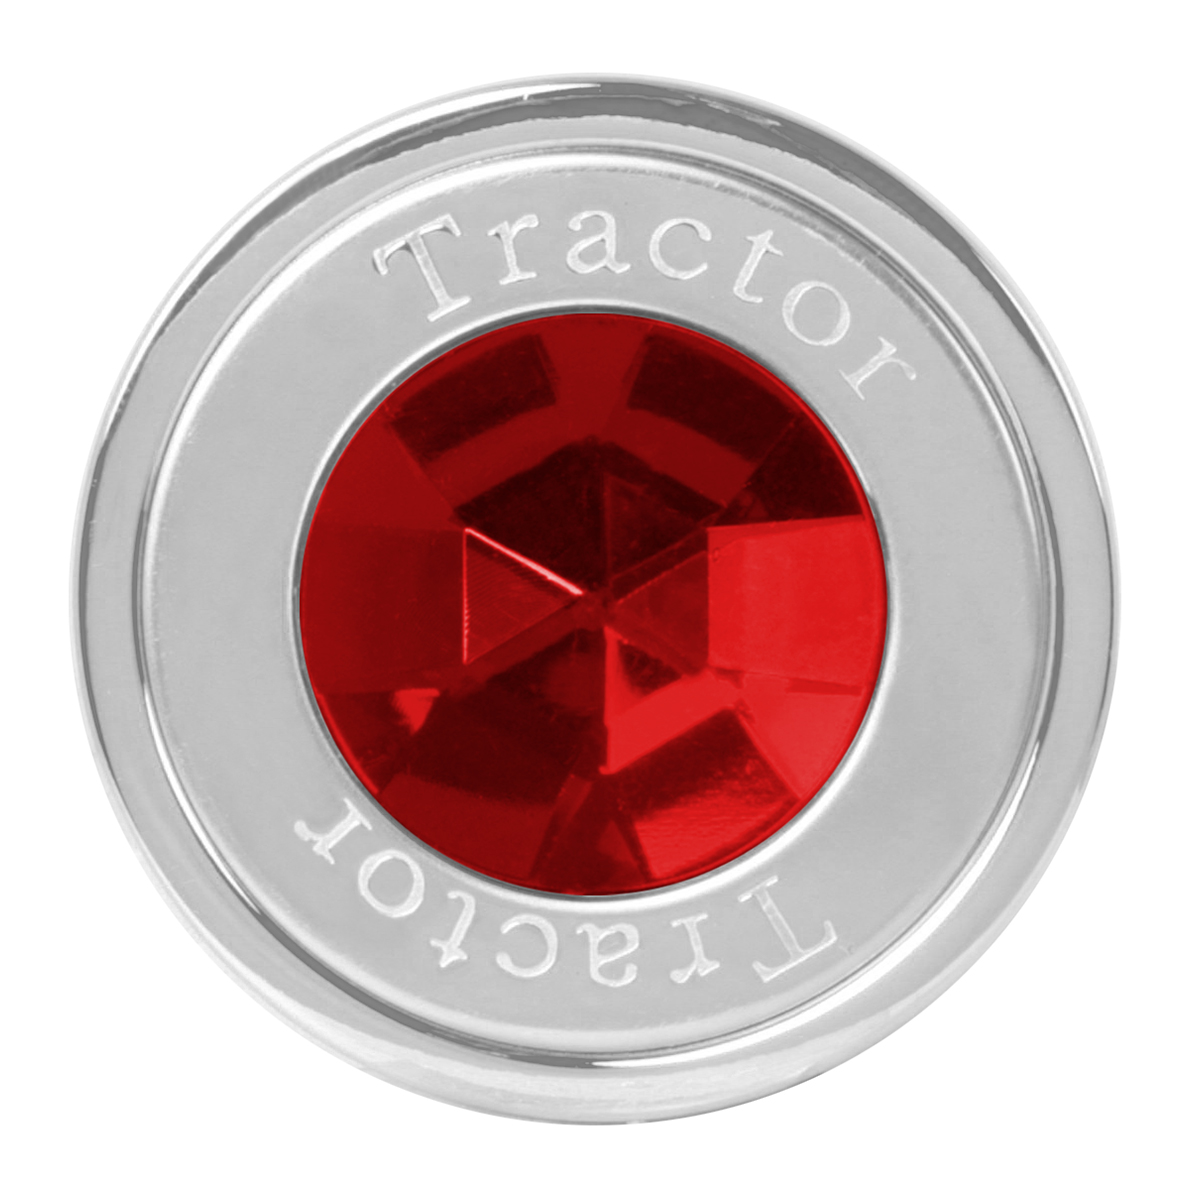 95835 Tractor Air Control Knob w/ Red Crystal